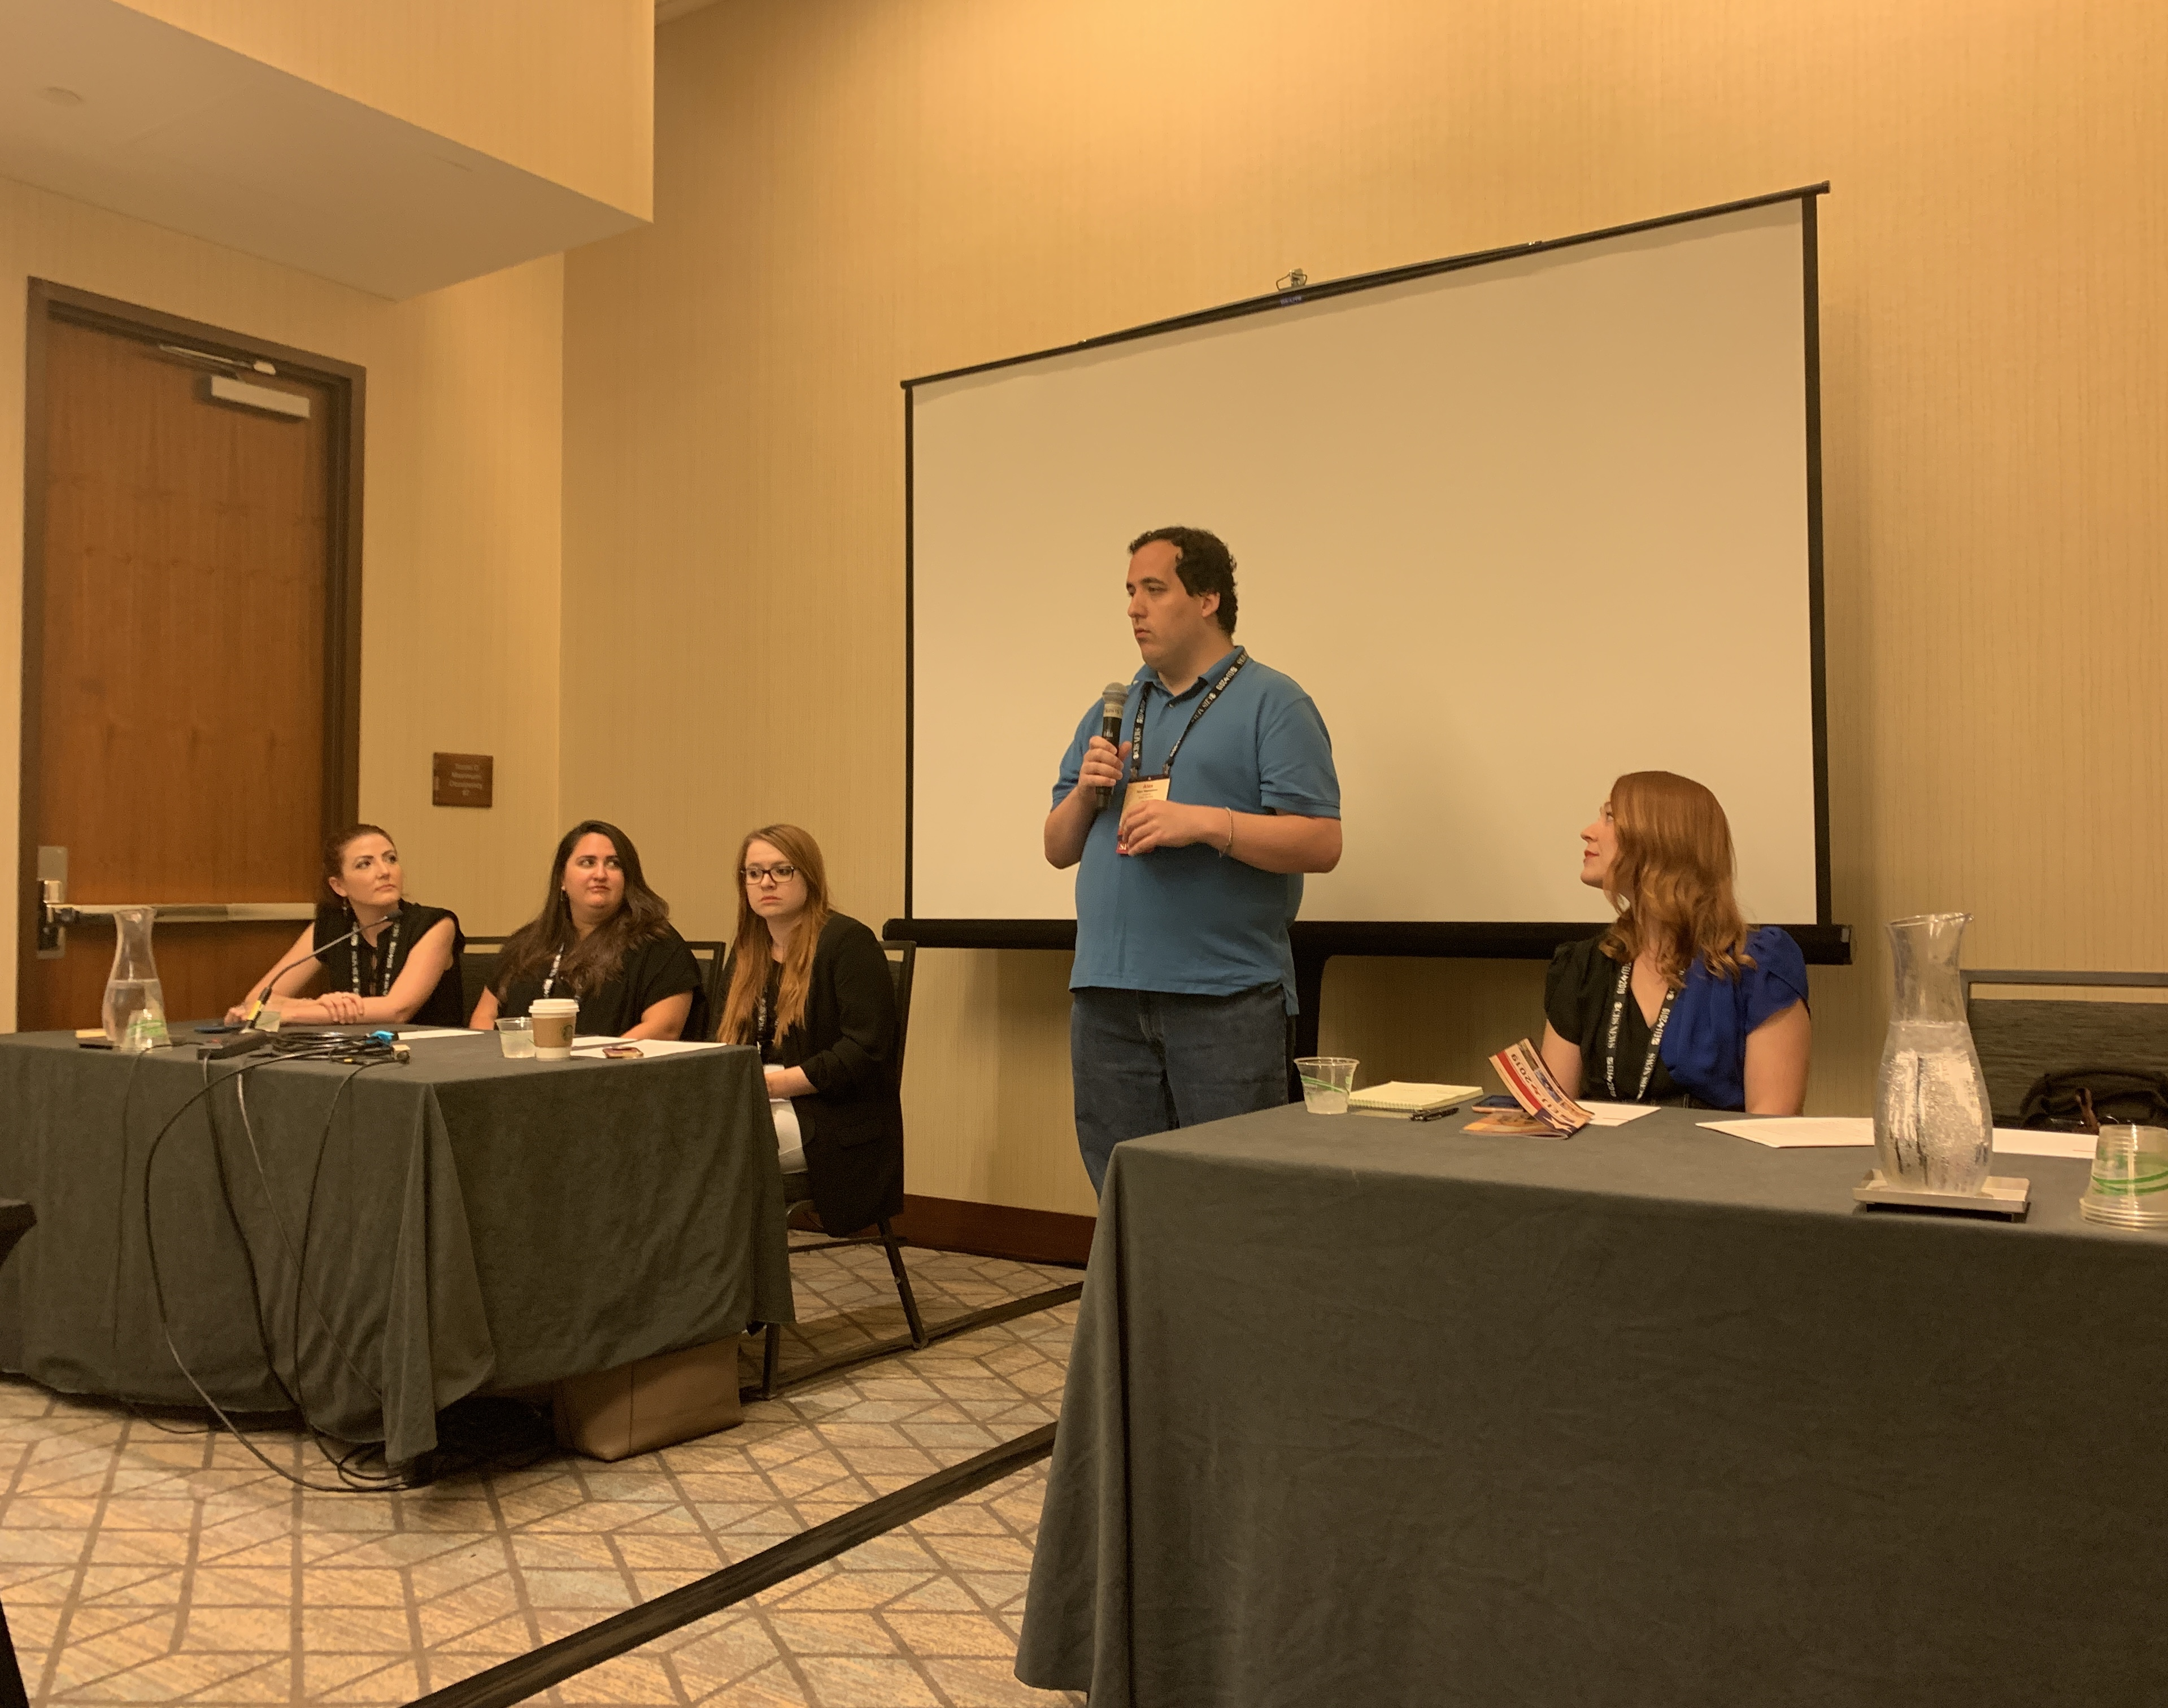 """EIJ Conference speakers of the workshop """"280 Character News: Staying Ethical When News Breaks on Twitter."""" Panelists (left to right) Brandi Smith, Ashley Lopez, Natalie Moore, Lauren McGaughy with moderator Alex Veeneman."""